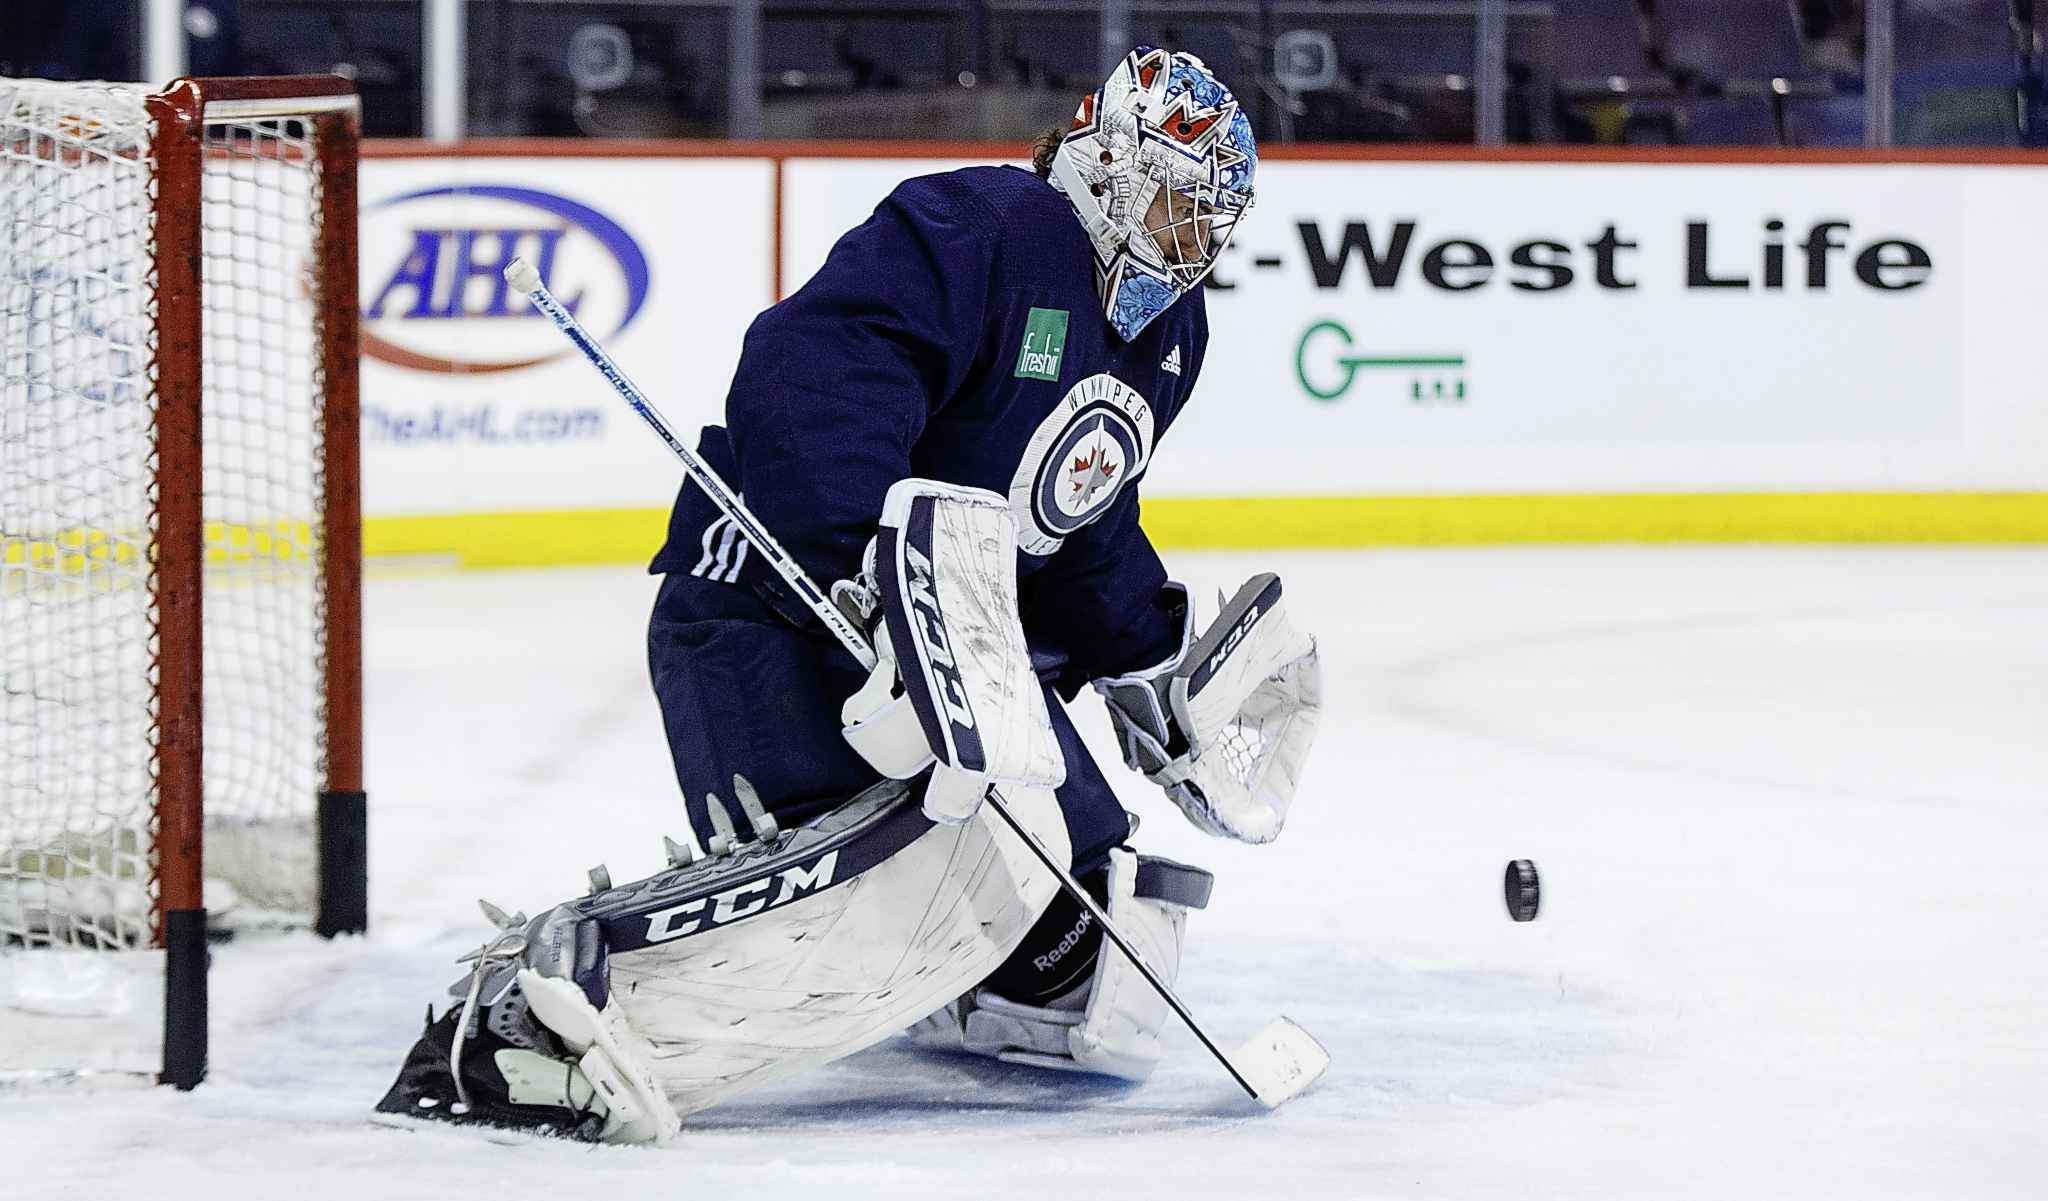 Connor Hellebuyck will get the start in net, with Eric Comrie backing him up. (Mike Deal / Winnipeg Free Press files)